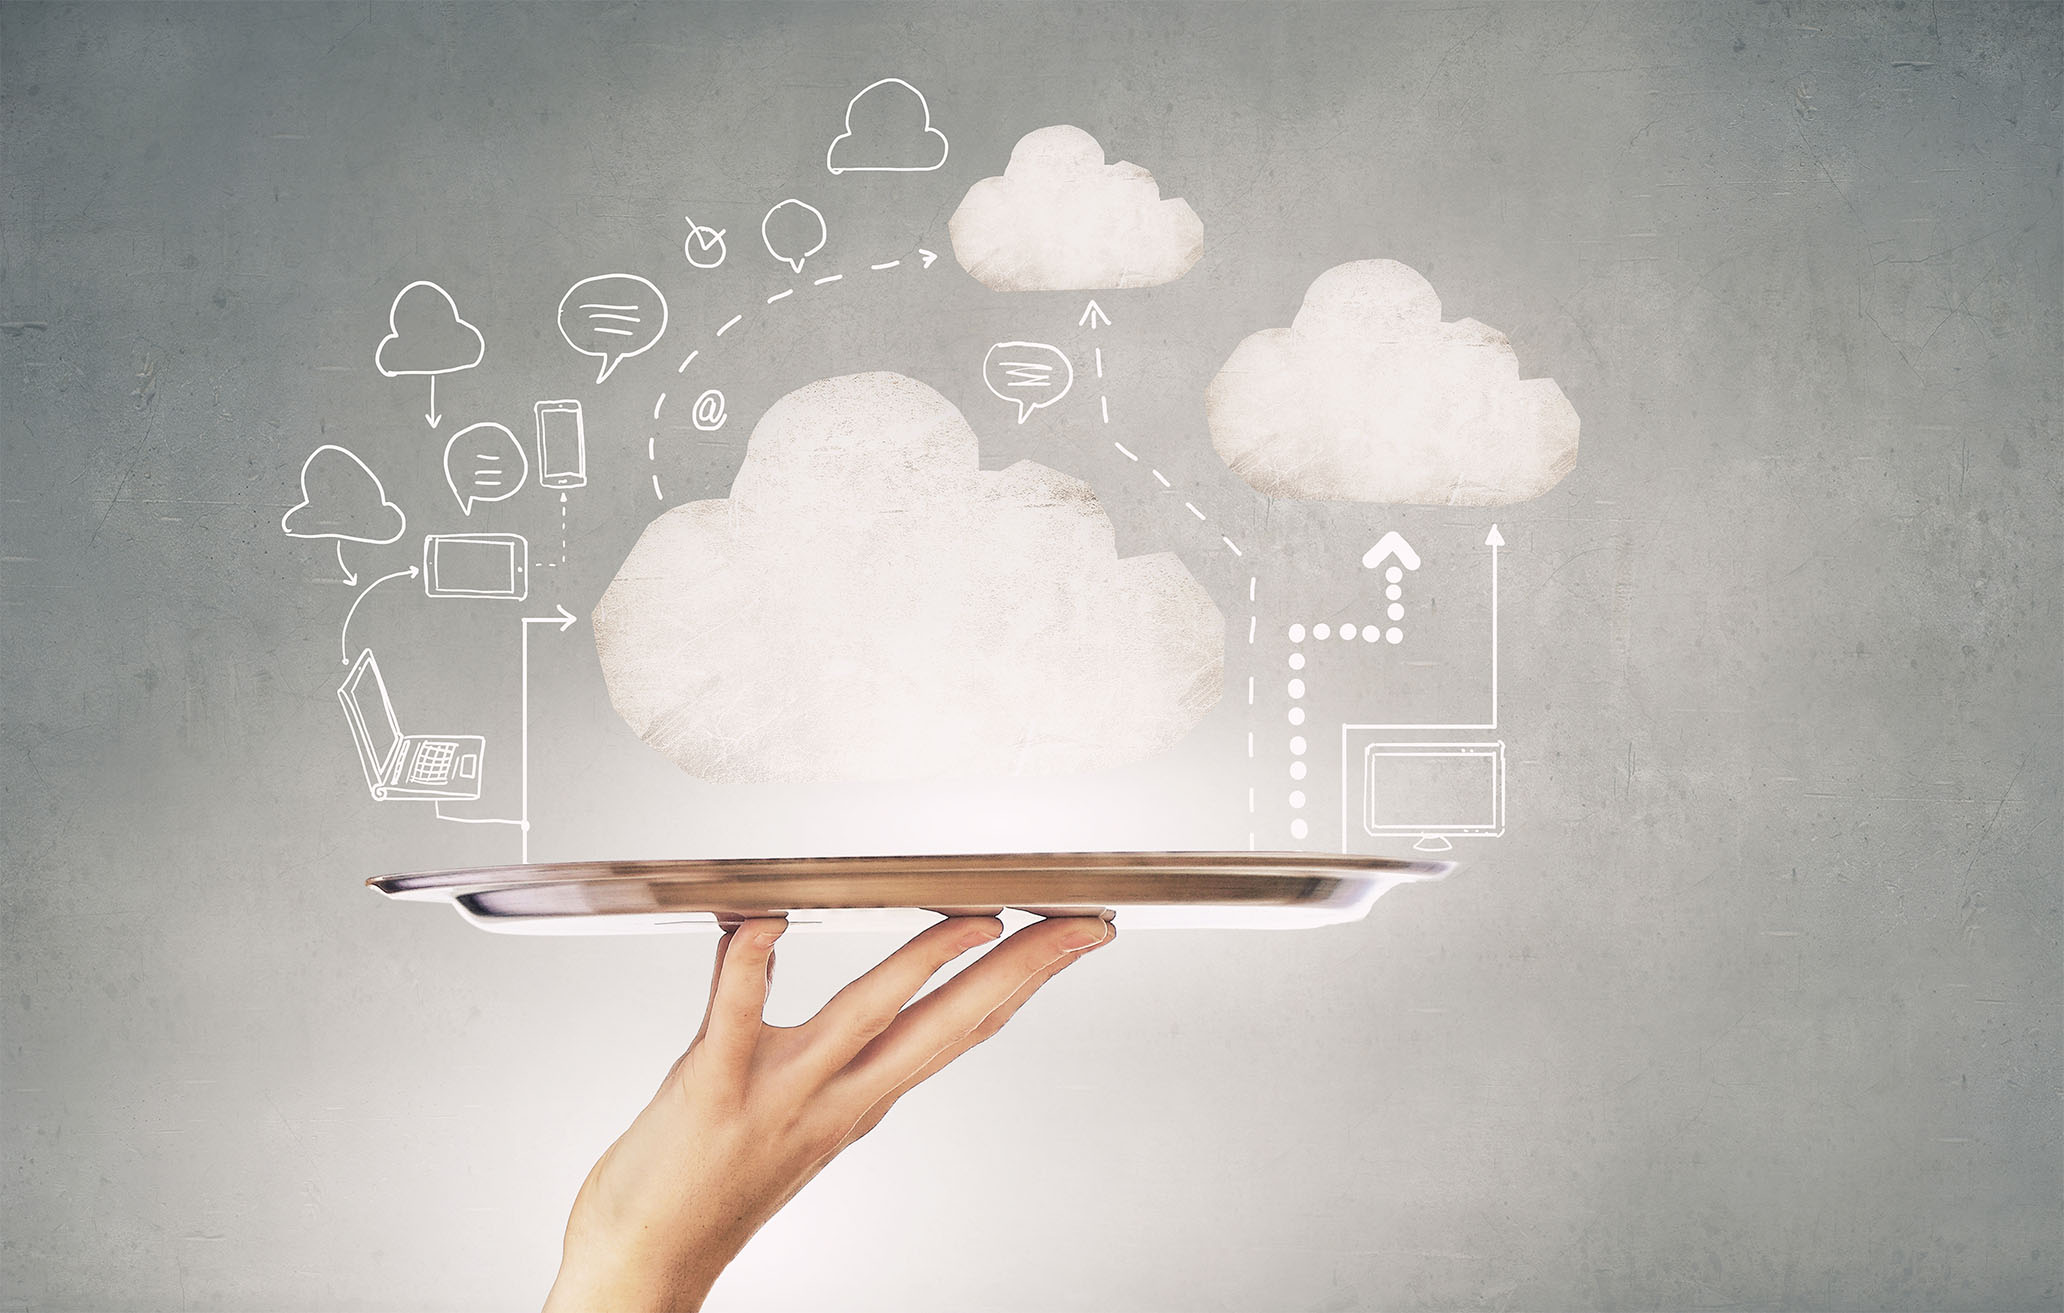 Cloud on a tray